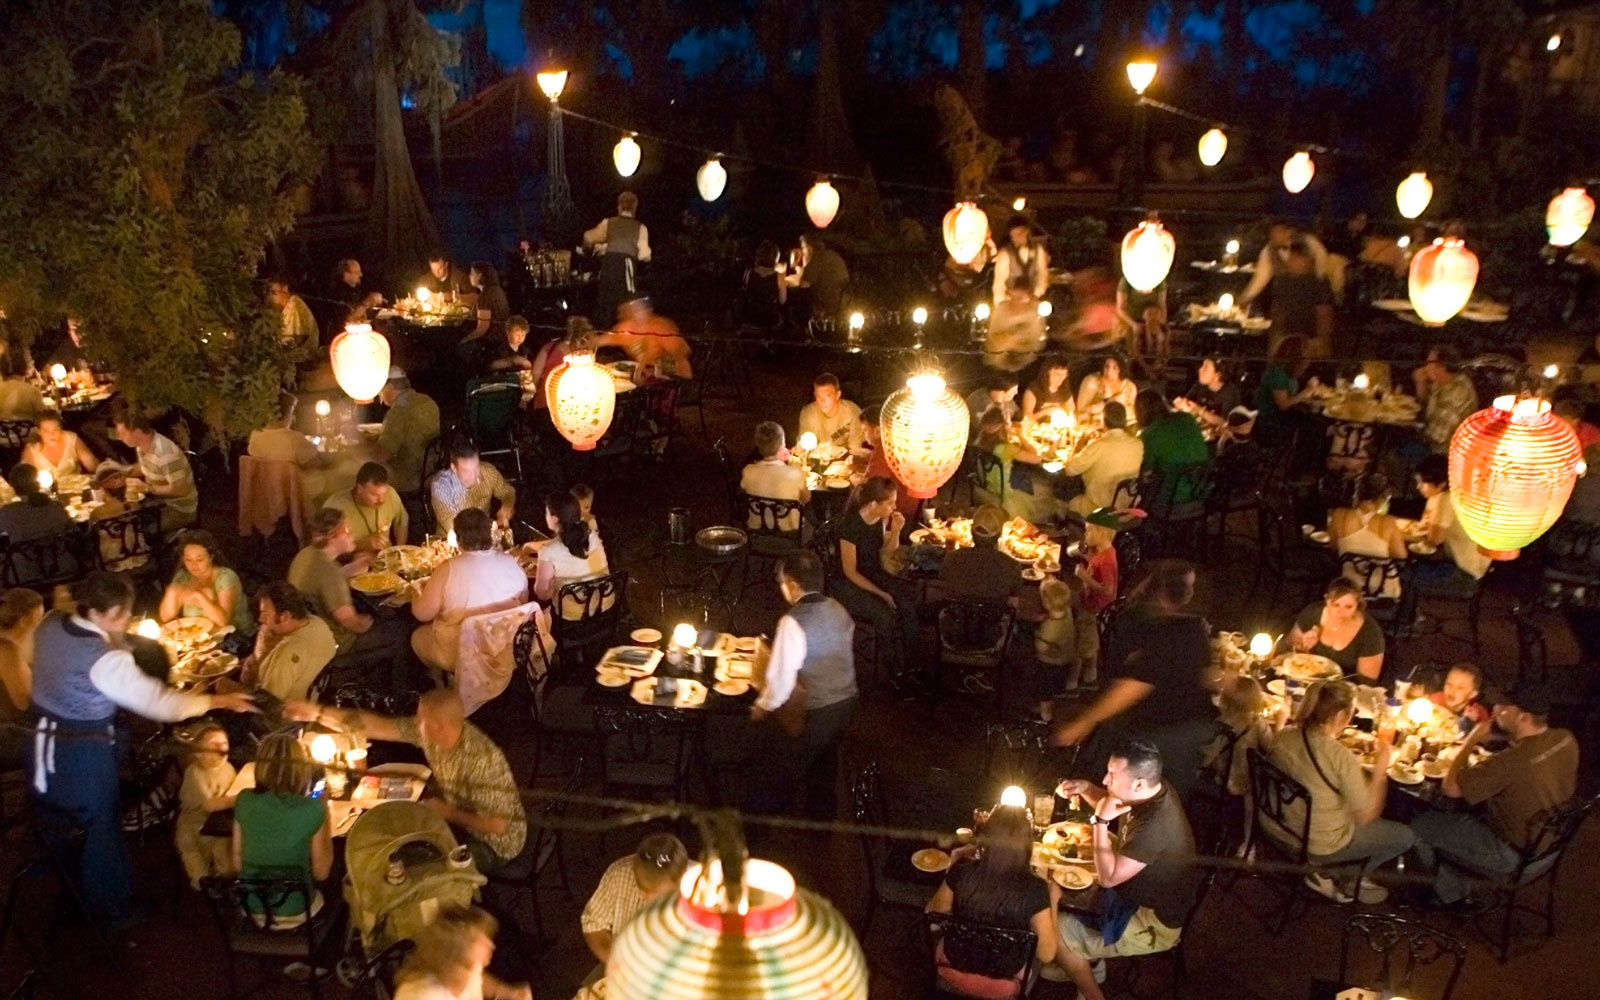 Blue Bayou Restaurant at Pirates of the Caribbean, Disneyland CA